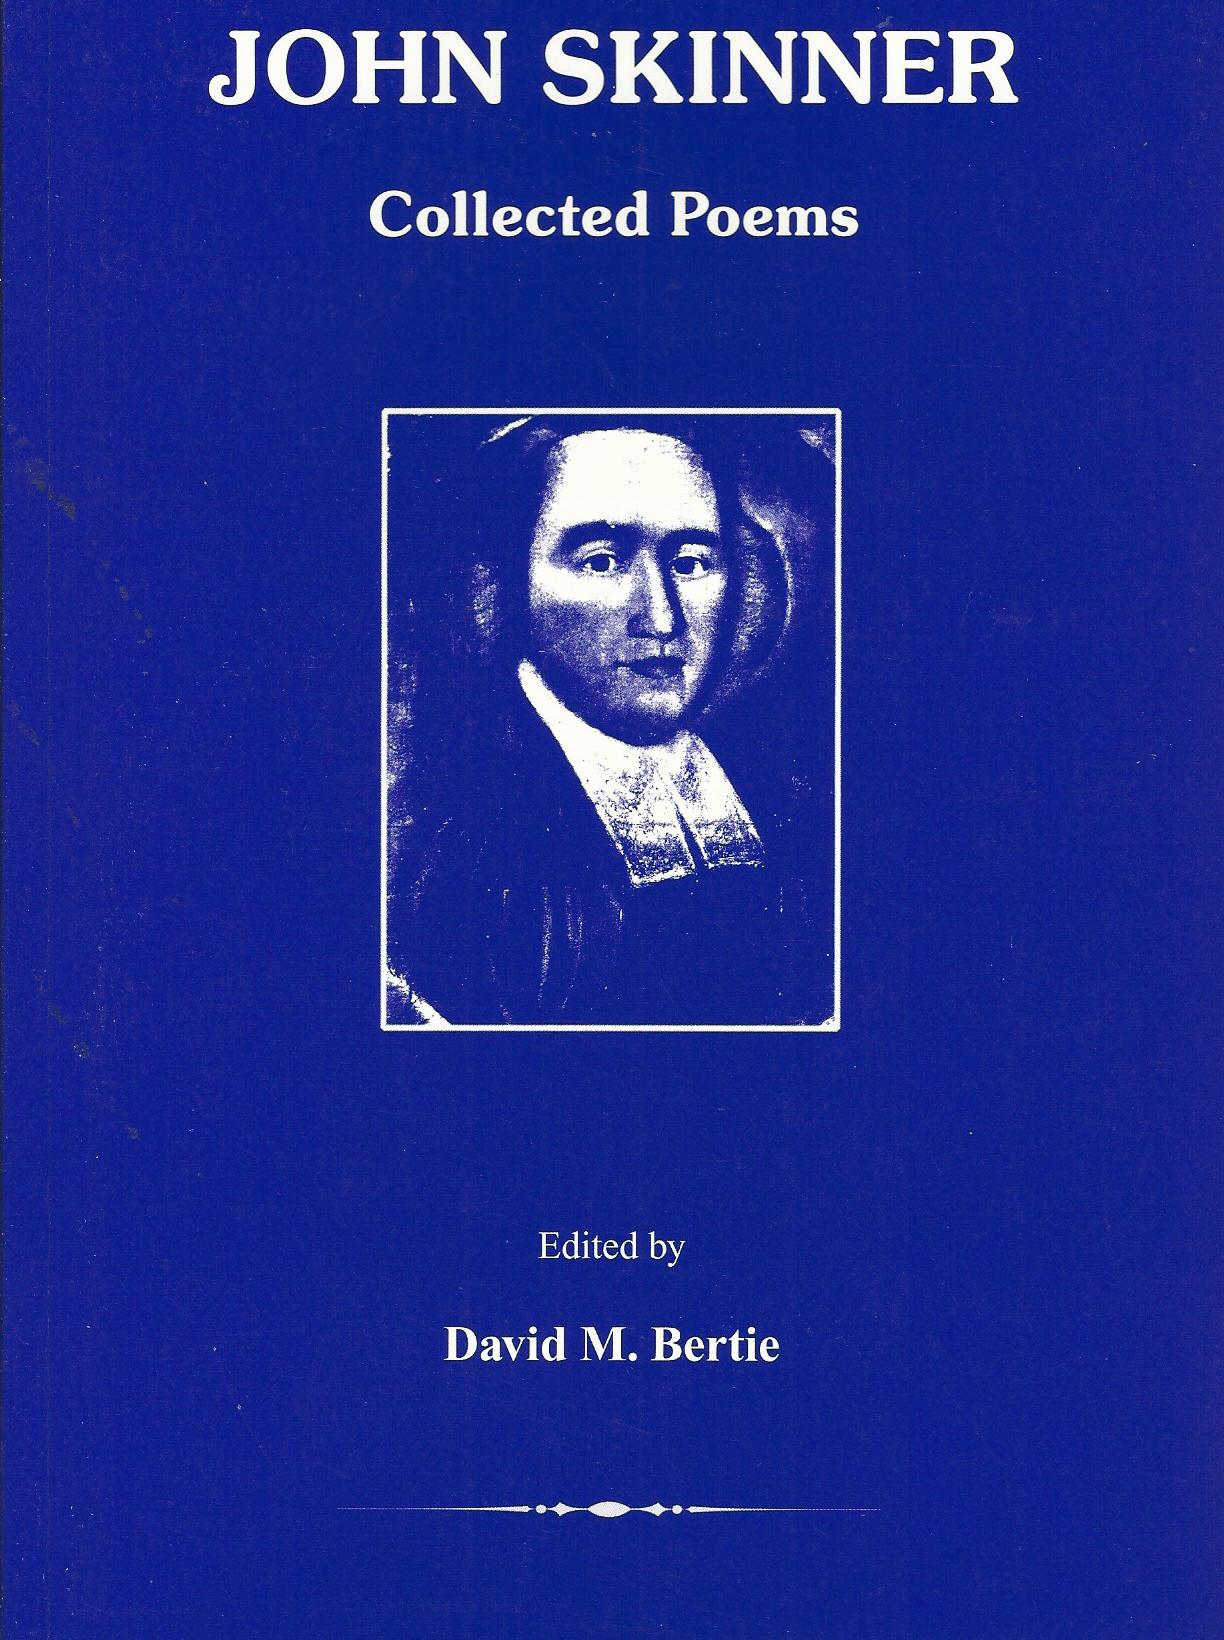 Image for John Skinner Collected Poems.